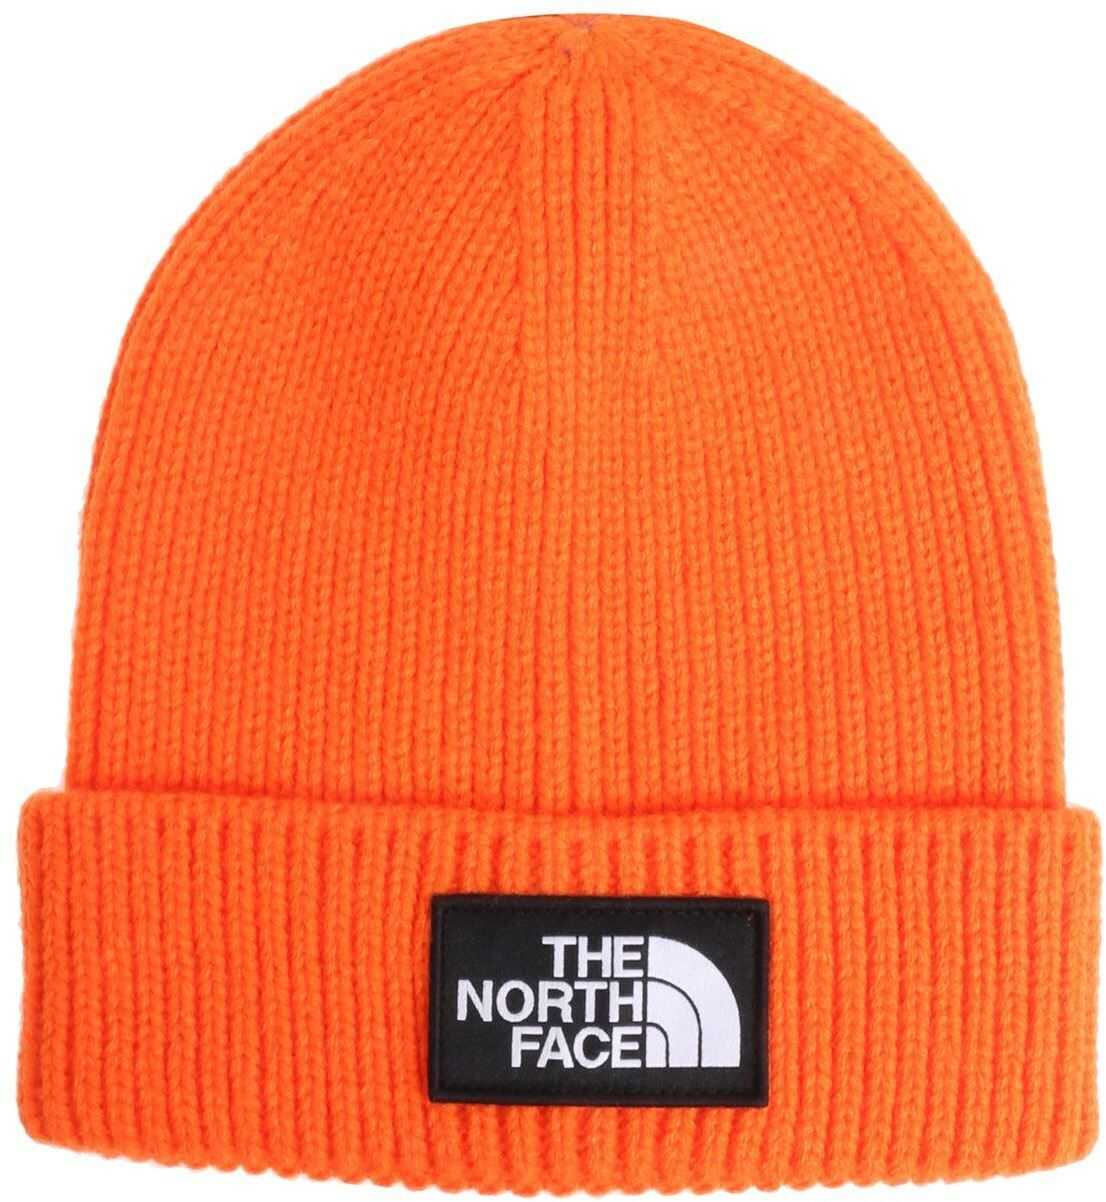 The North Face Orange Beanie With Logo Orange